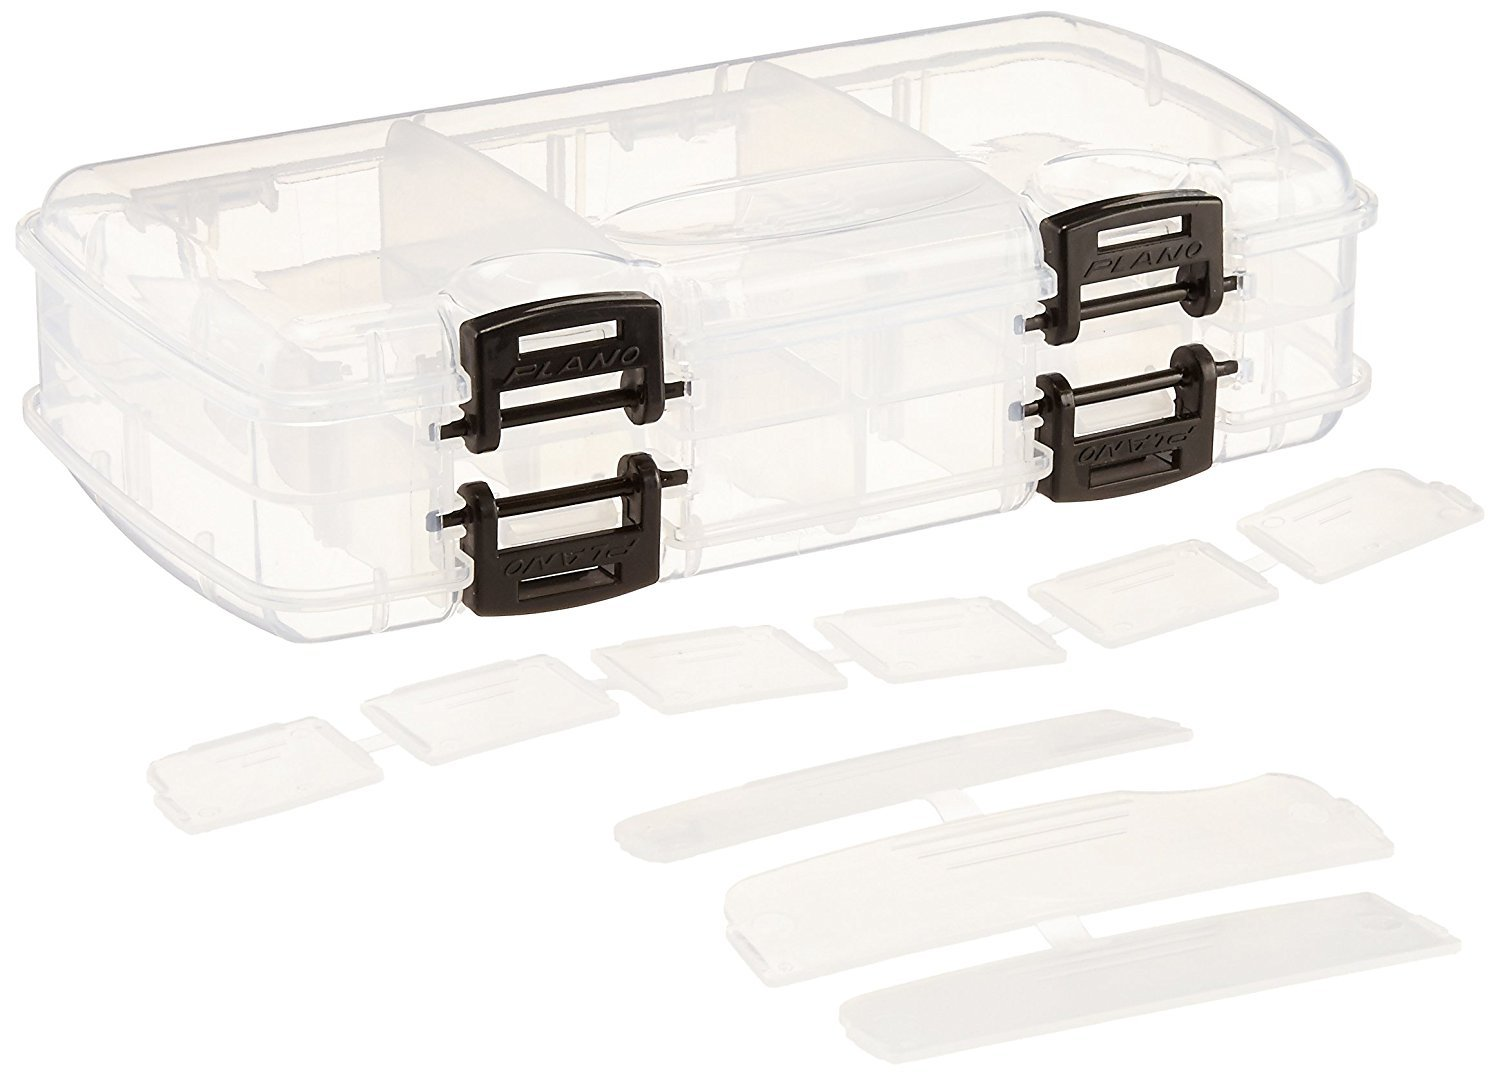 Plano 3450-23 Double-Sided Tackle Box, Premium Tackle Storage (2 Pack) by Plano